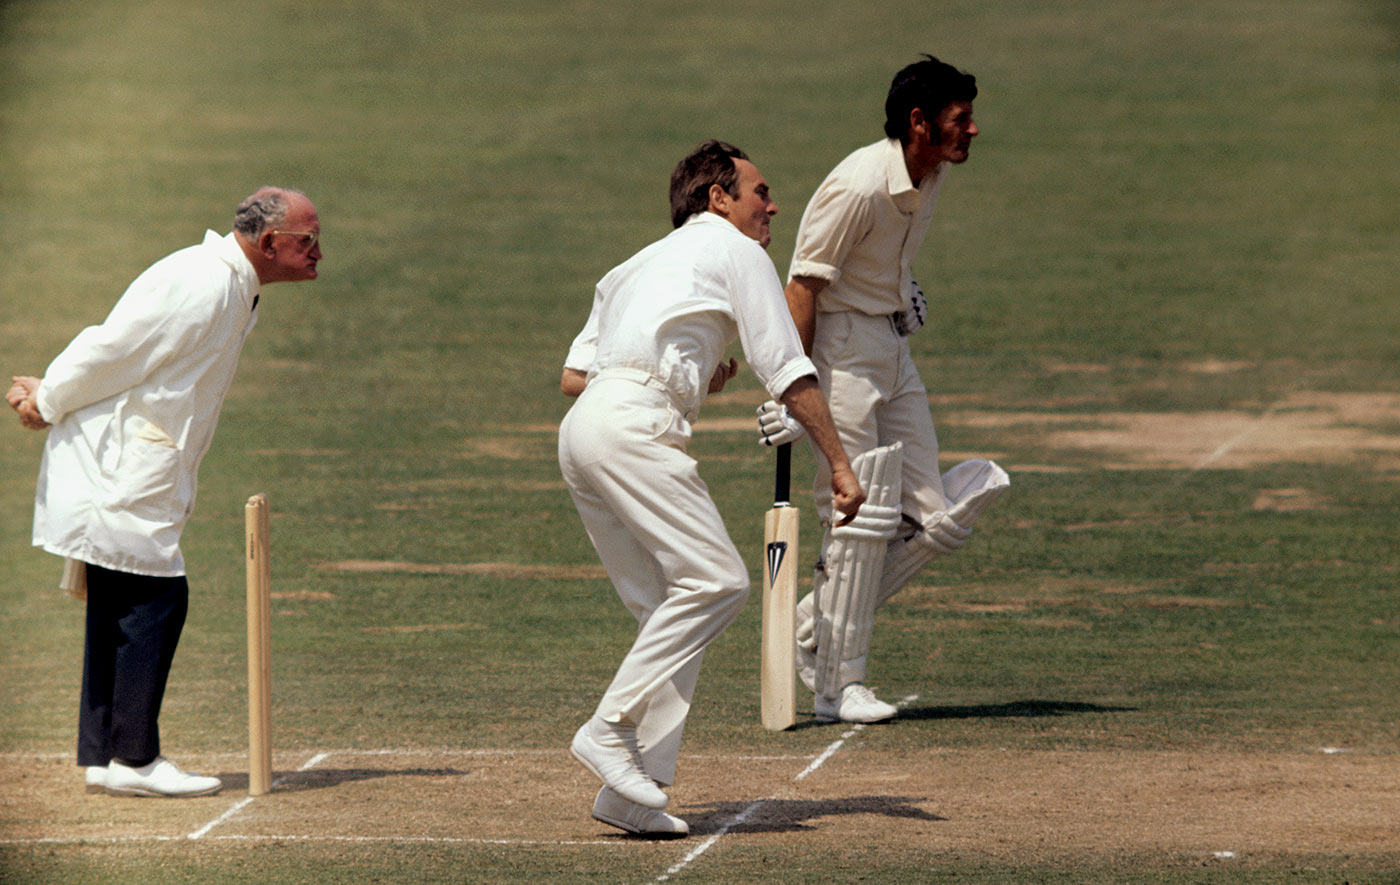 Illingworth took 122 wickets in 61 Tests with his offspin*